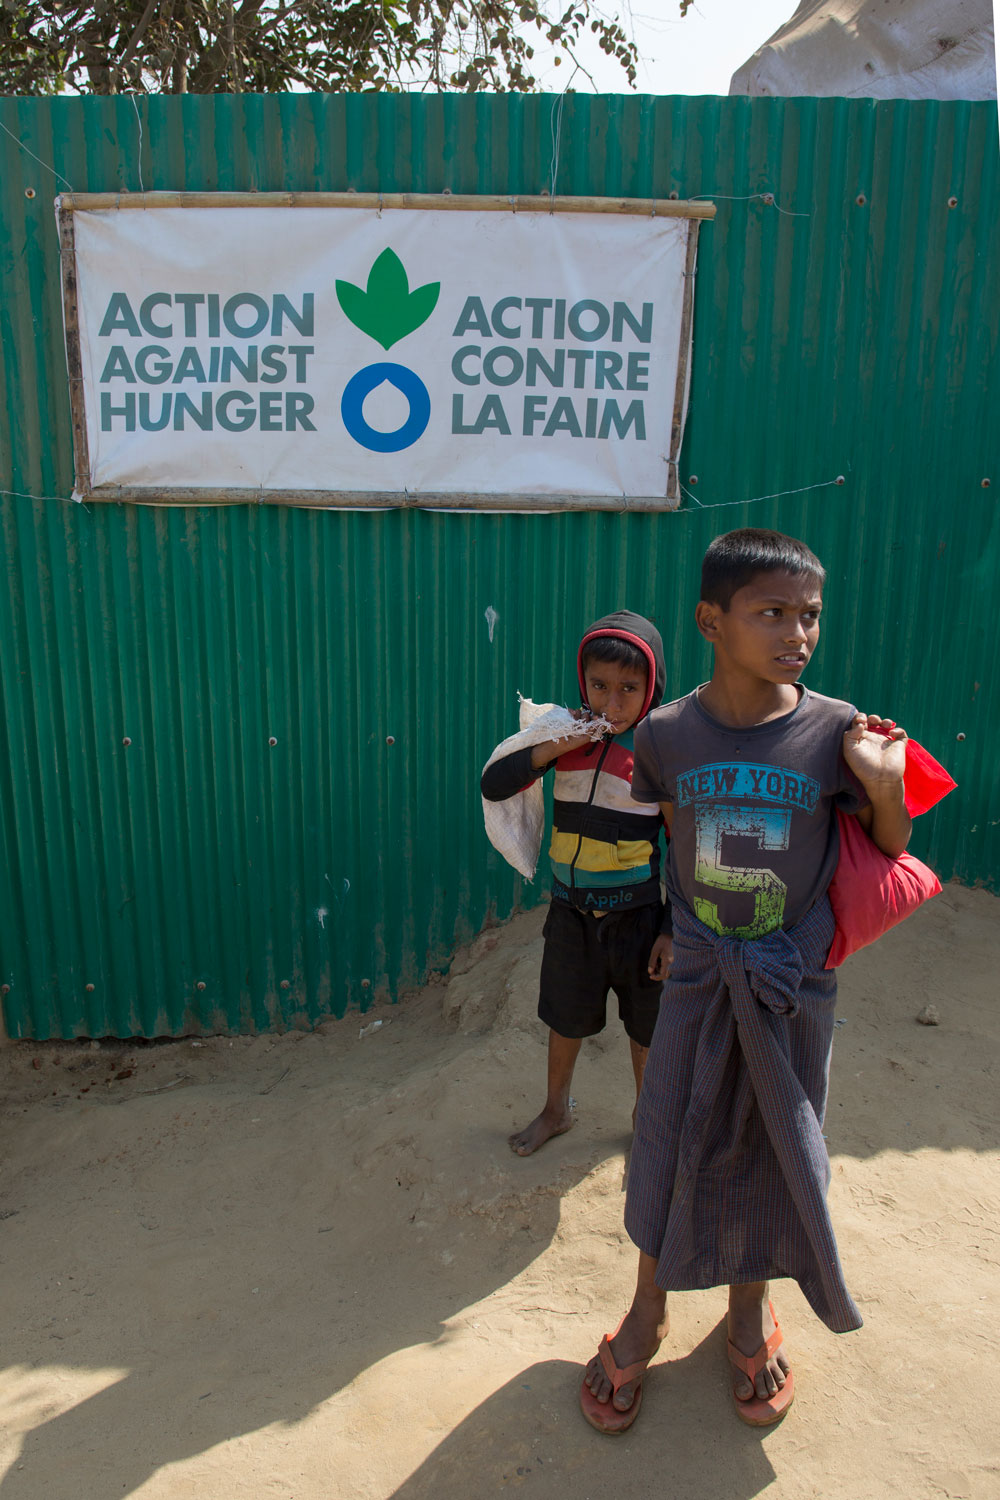 Action-Against-Hunger-image-1